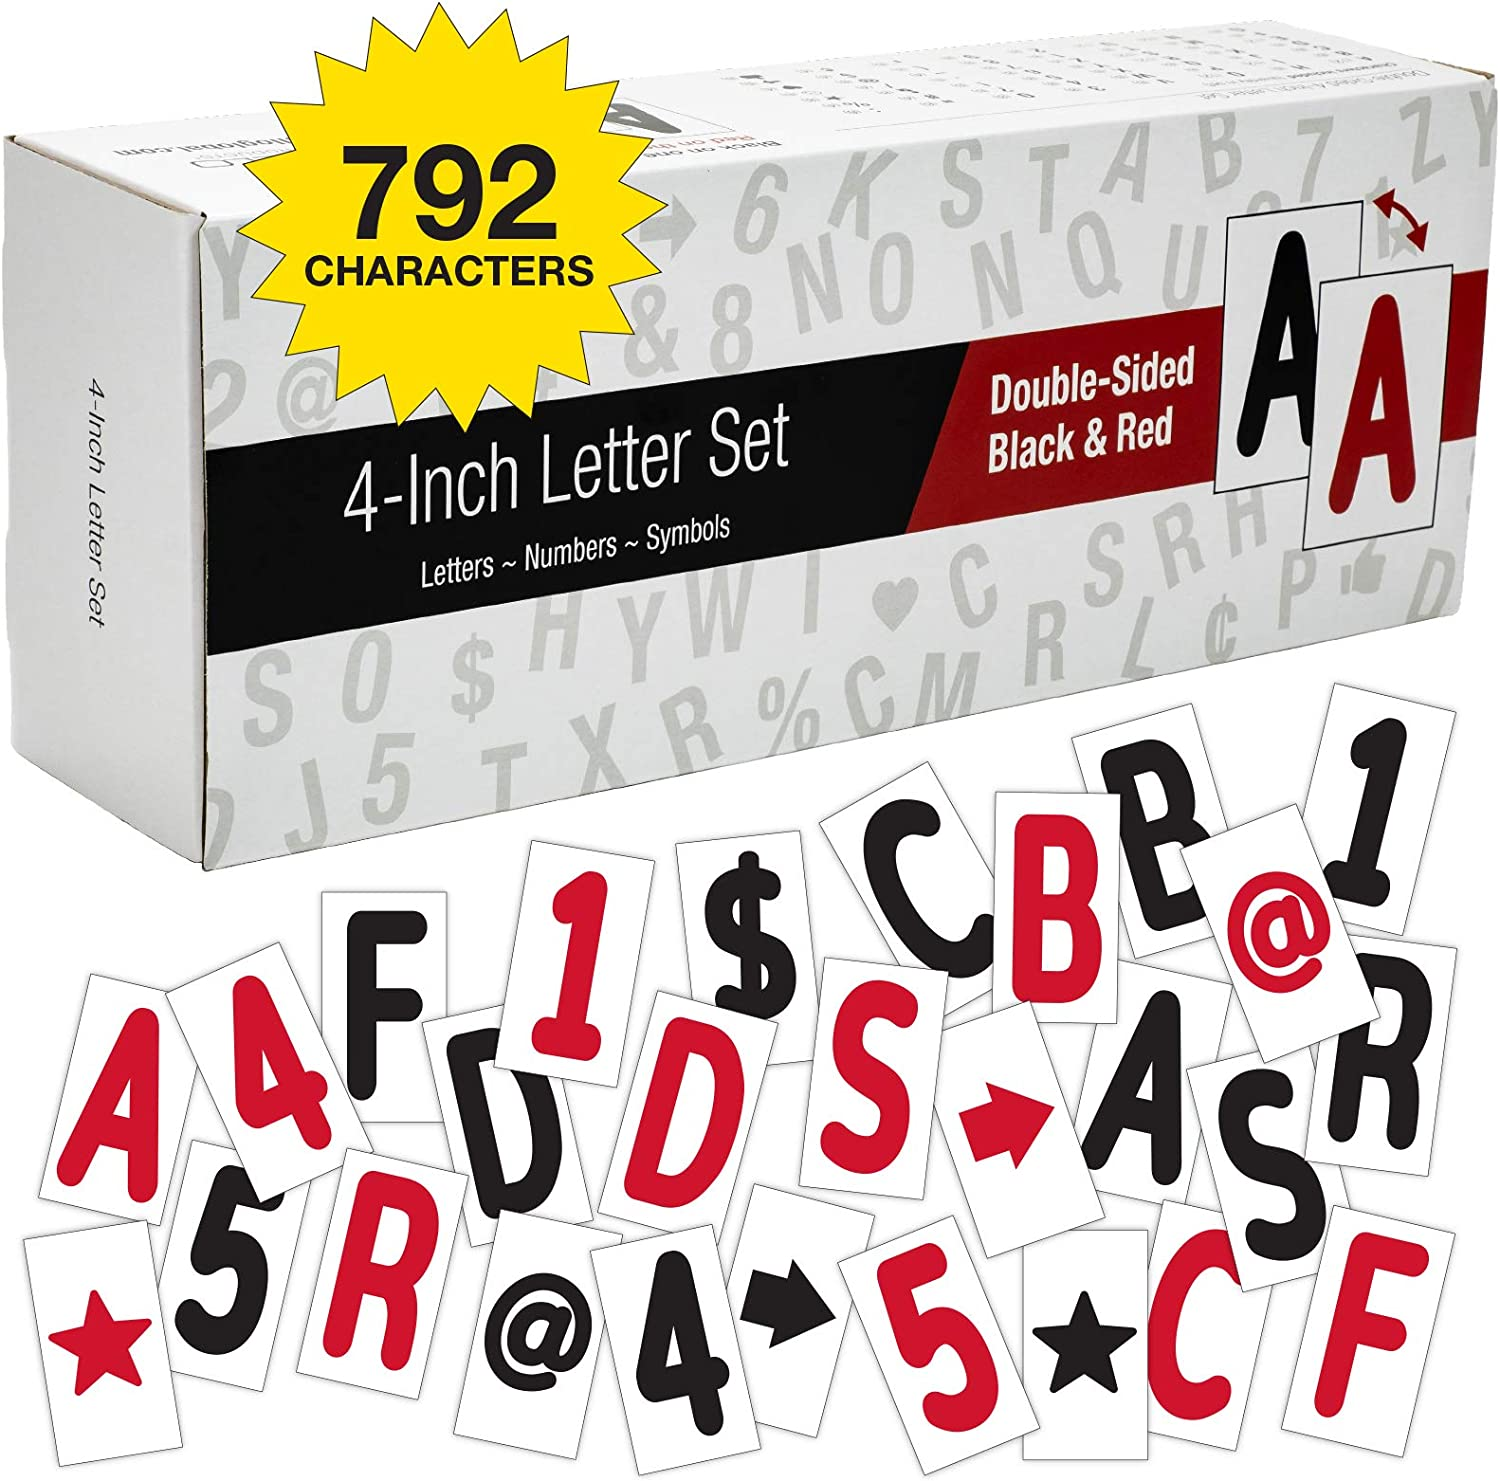 Swinging Sign Letters: Includes 792 Four inch Letters, Symbols, and Numbers for 24